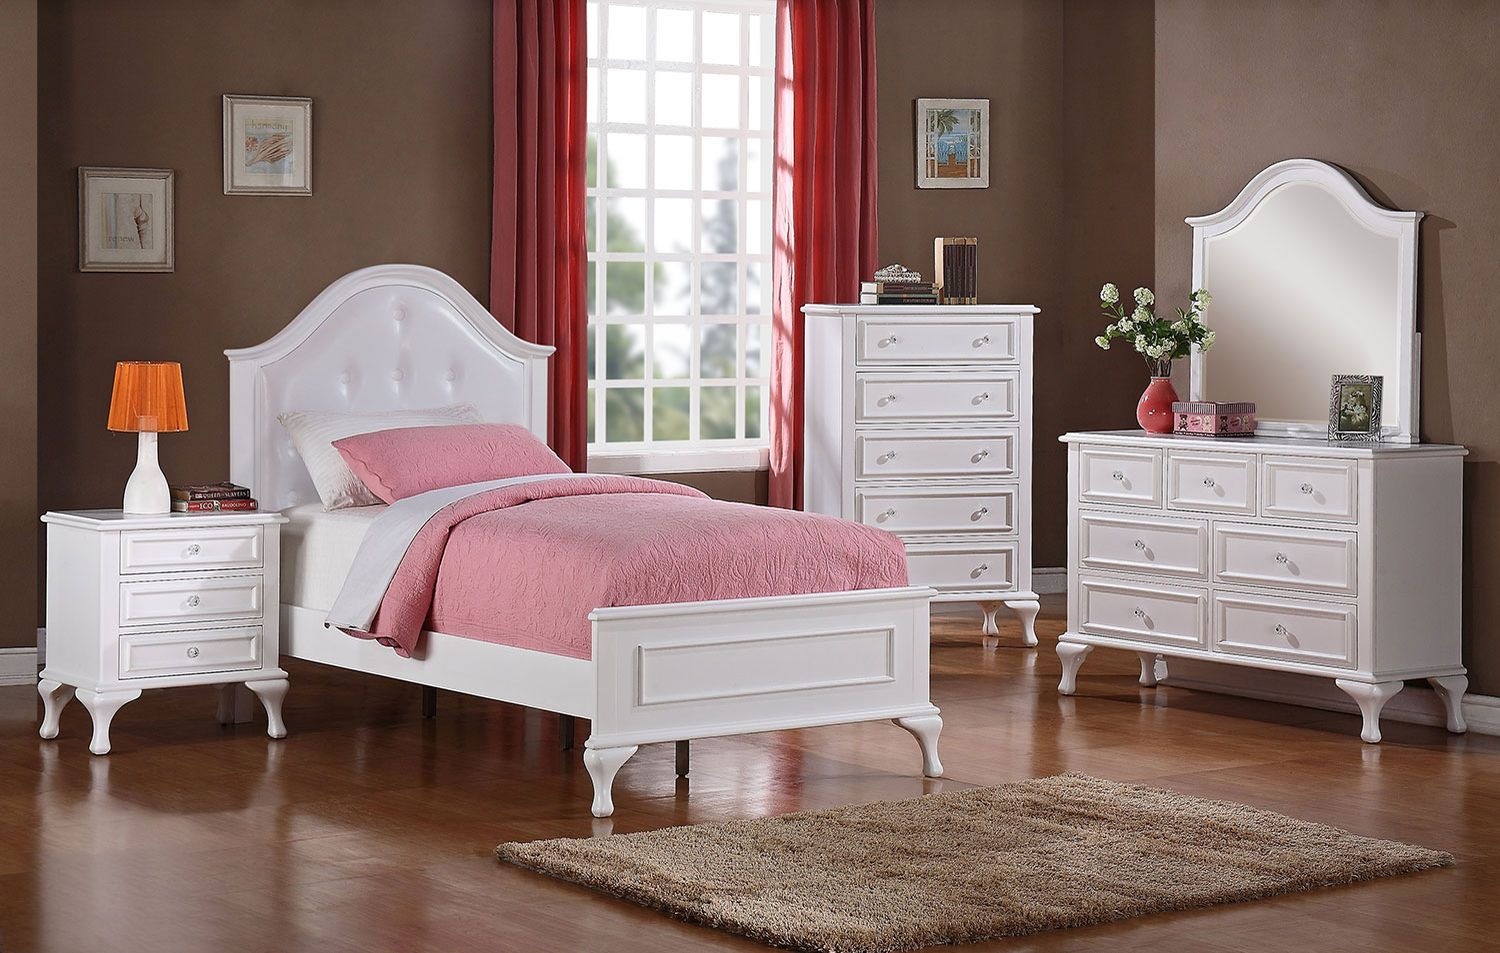 Kids Furniture - Riva 4-Piece Twin Bedroom Set with Dresser, Mirror and Chest - White